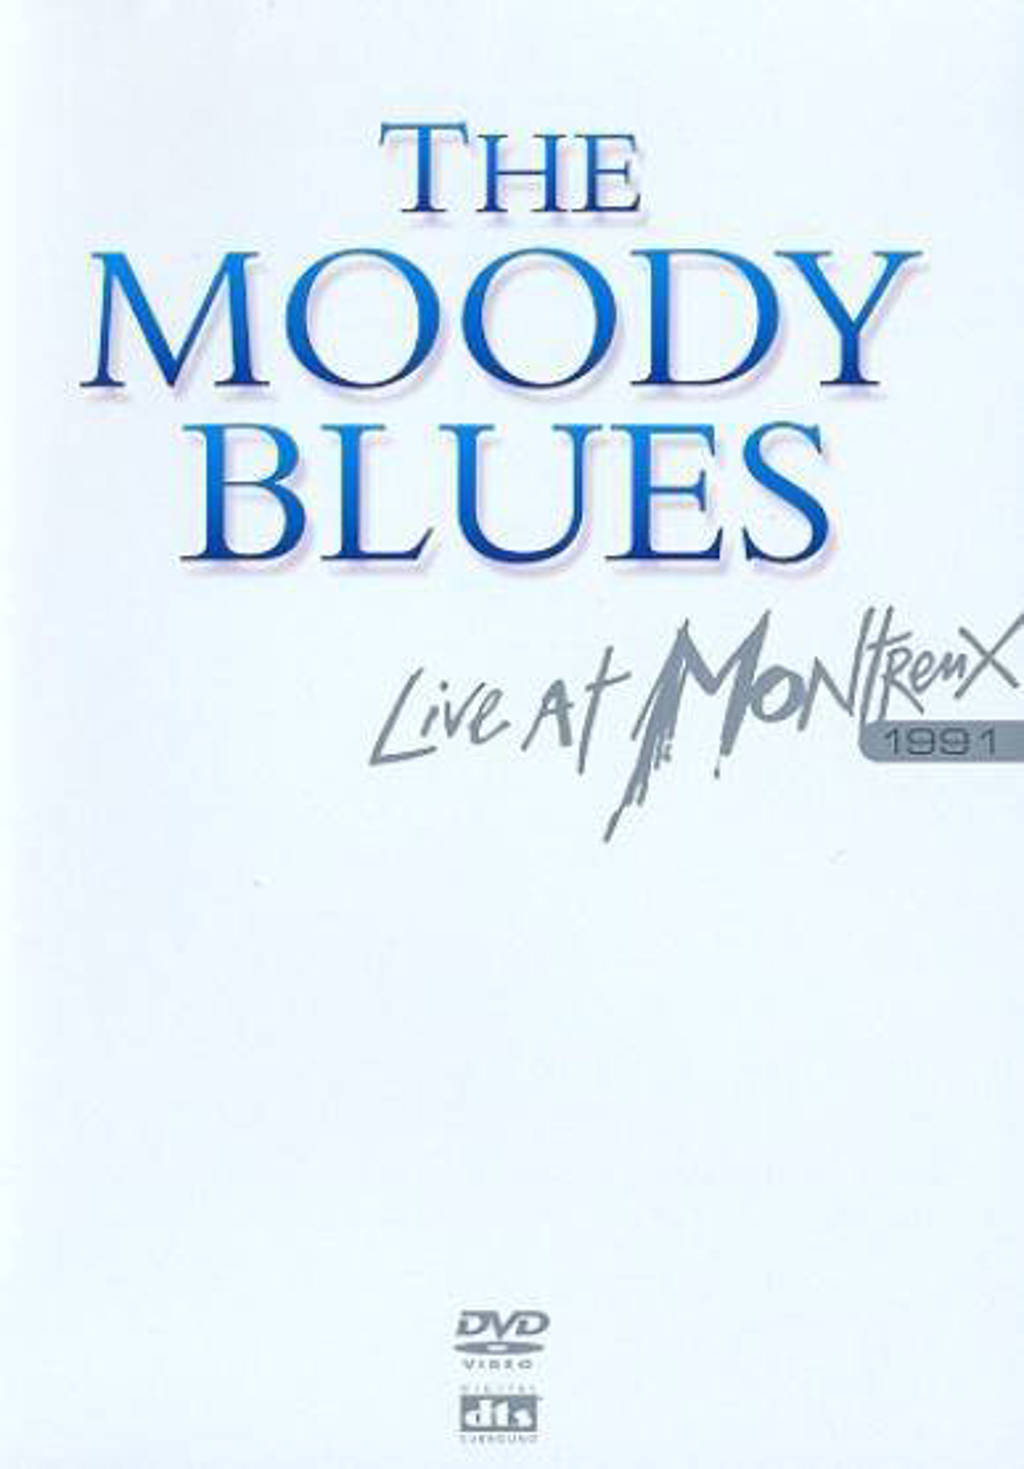 Moody Blues - Live at Montreux (DVD)